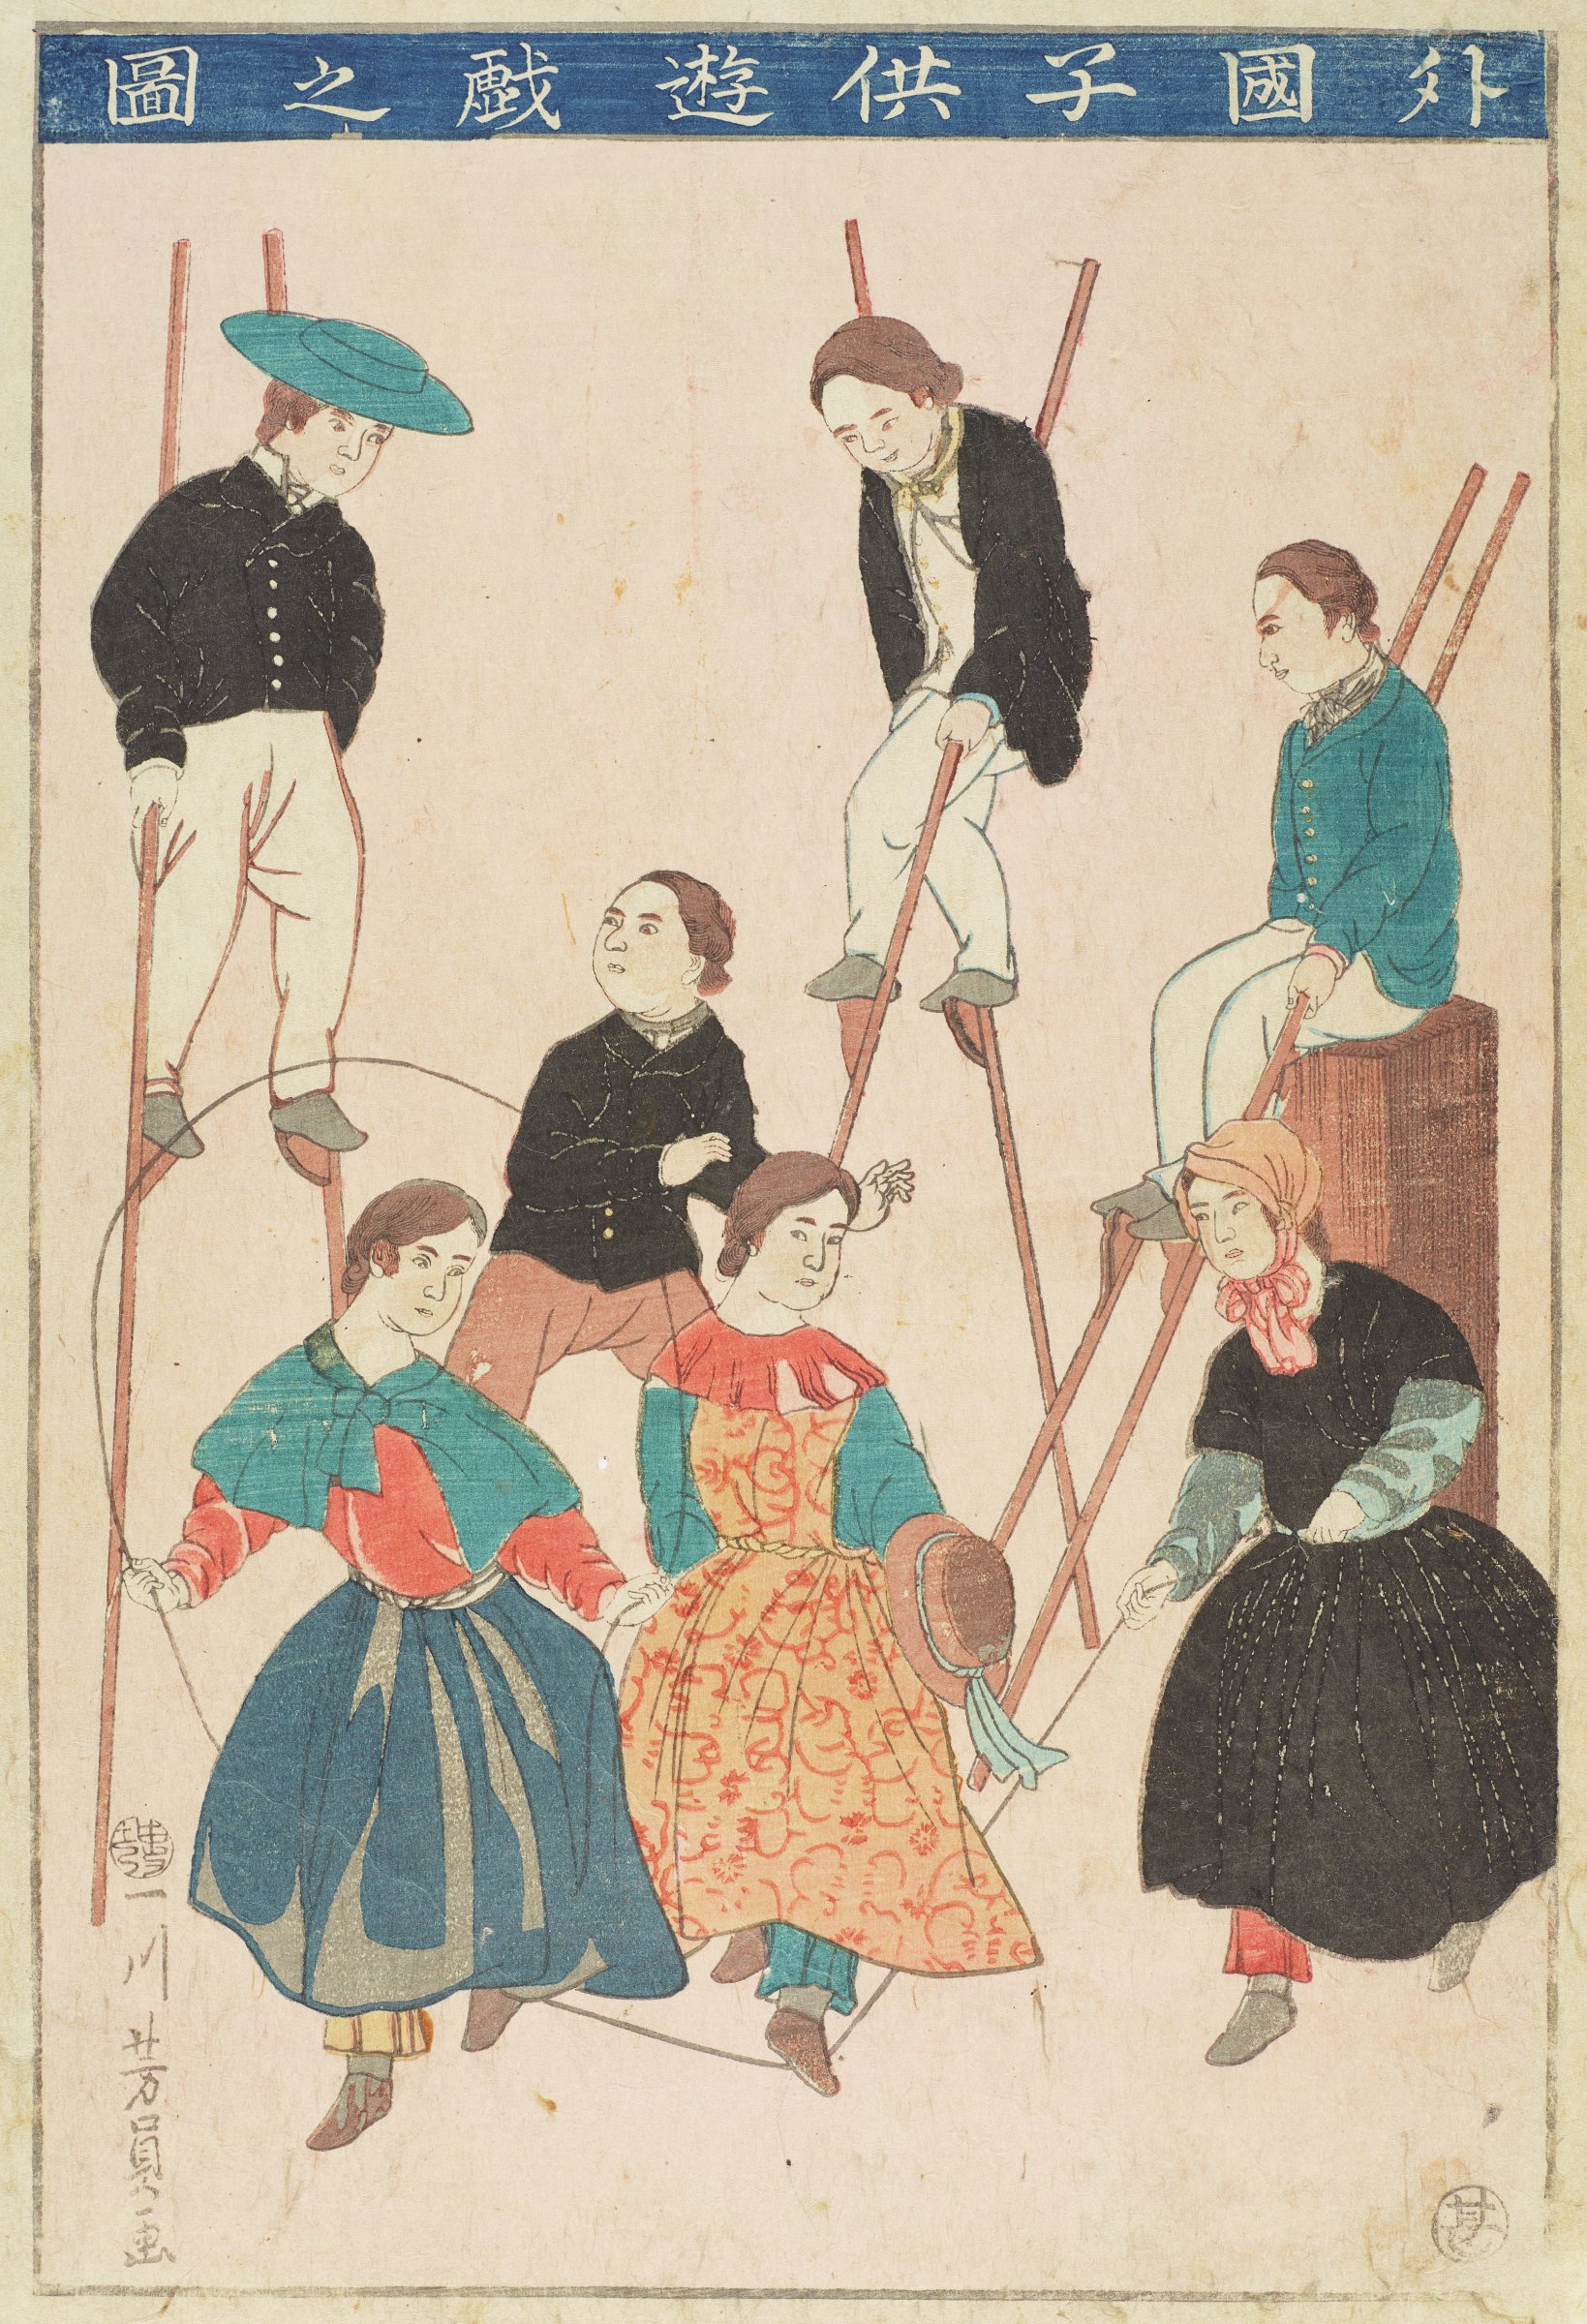 Foreign Children at Play, Utagawa Yoshikazu, ink and color on paper